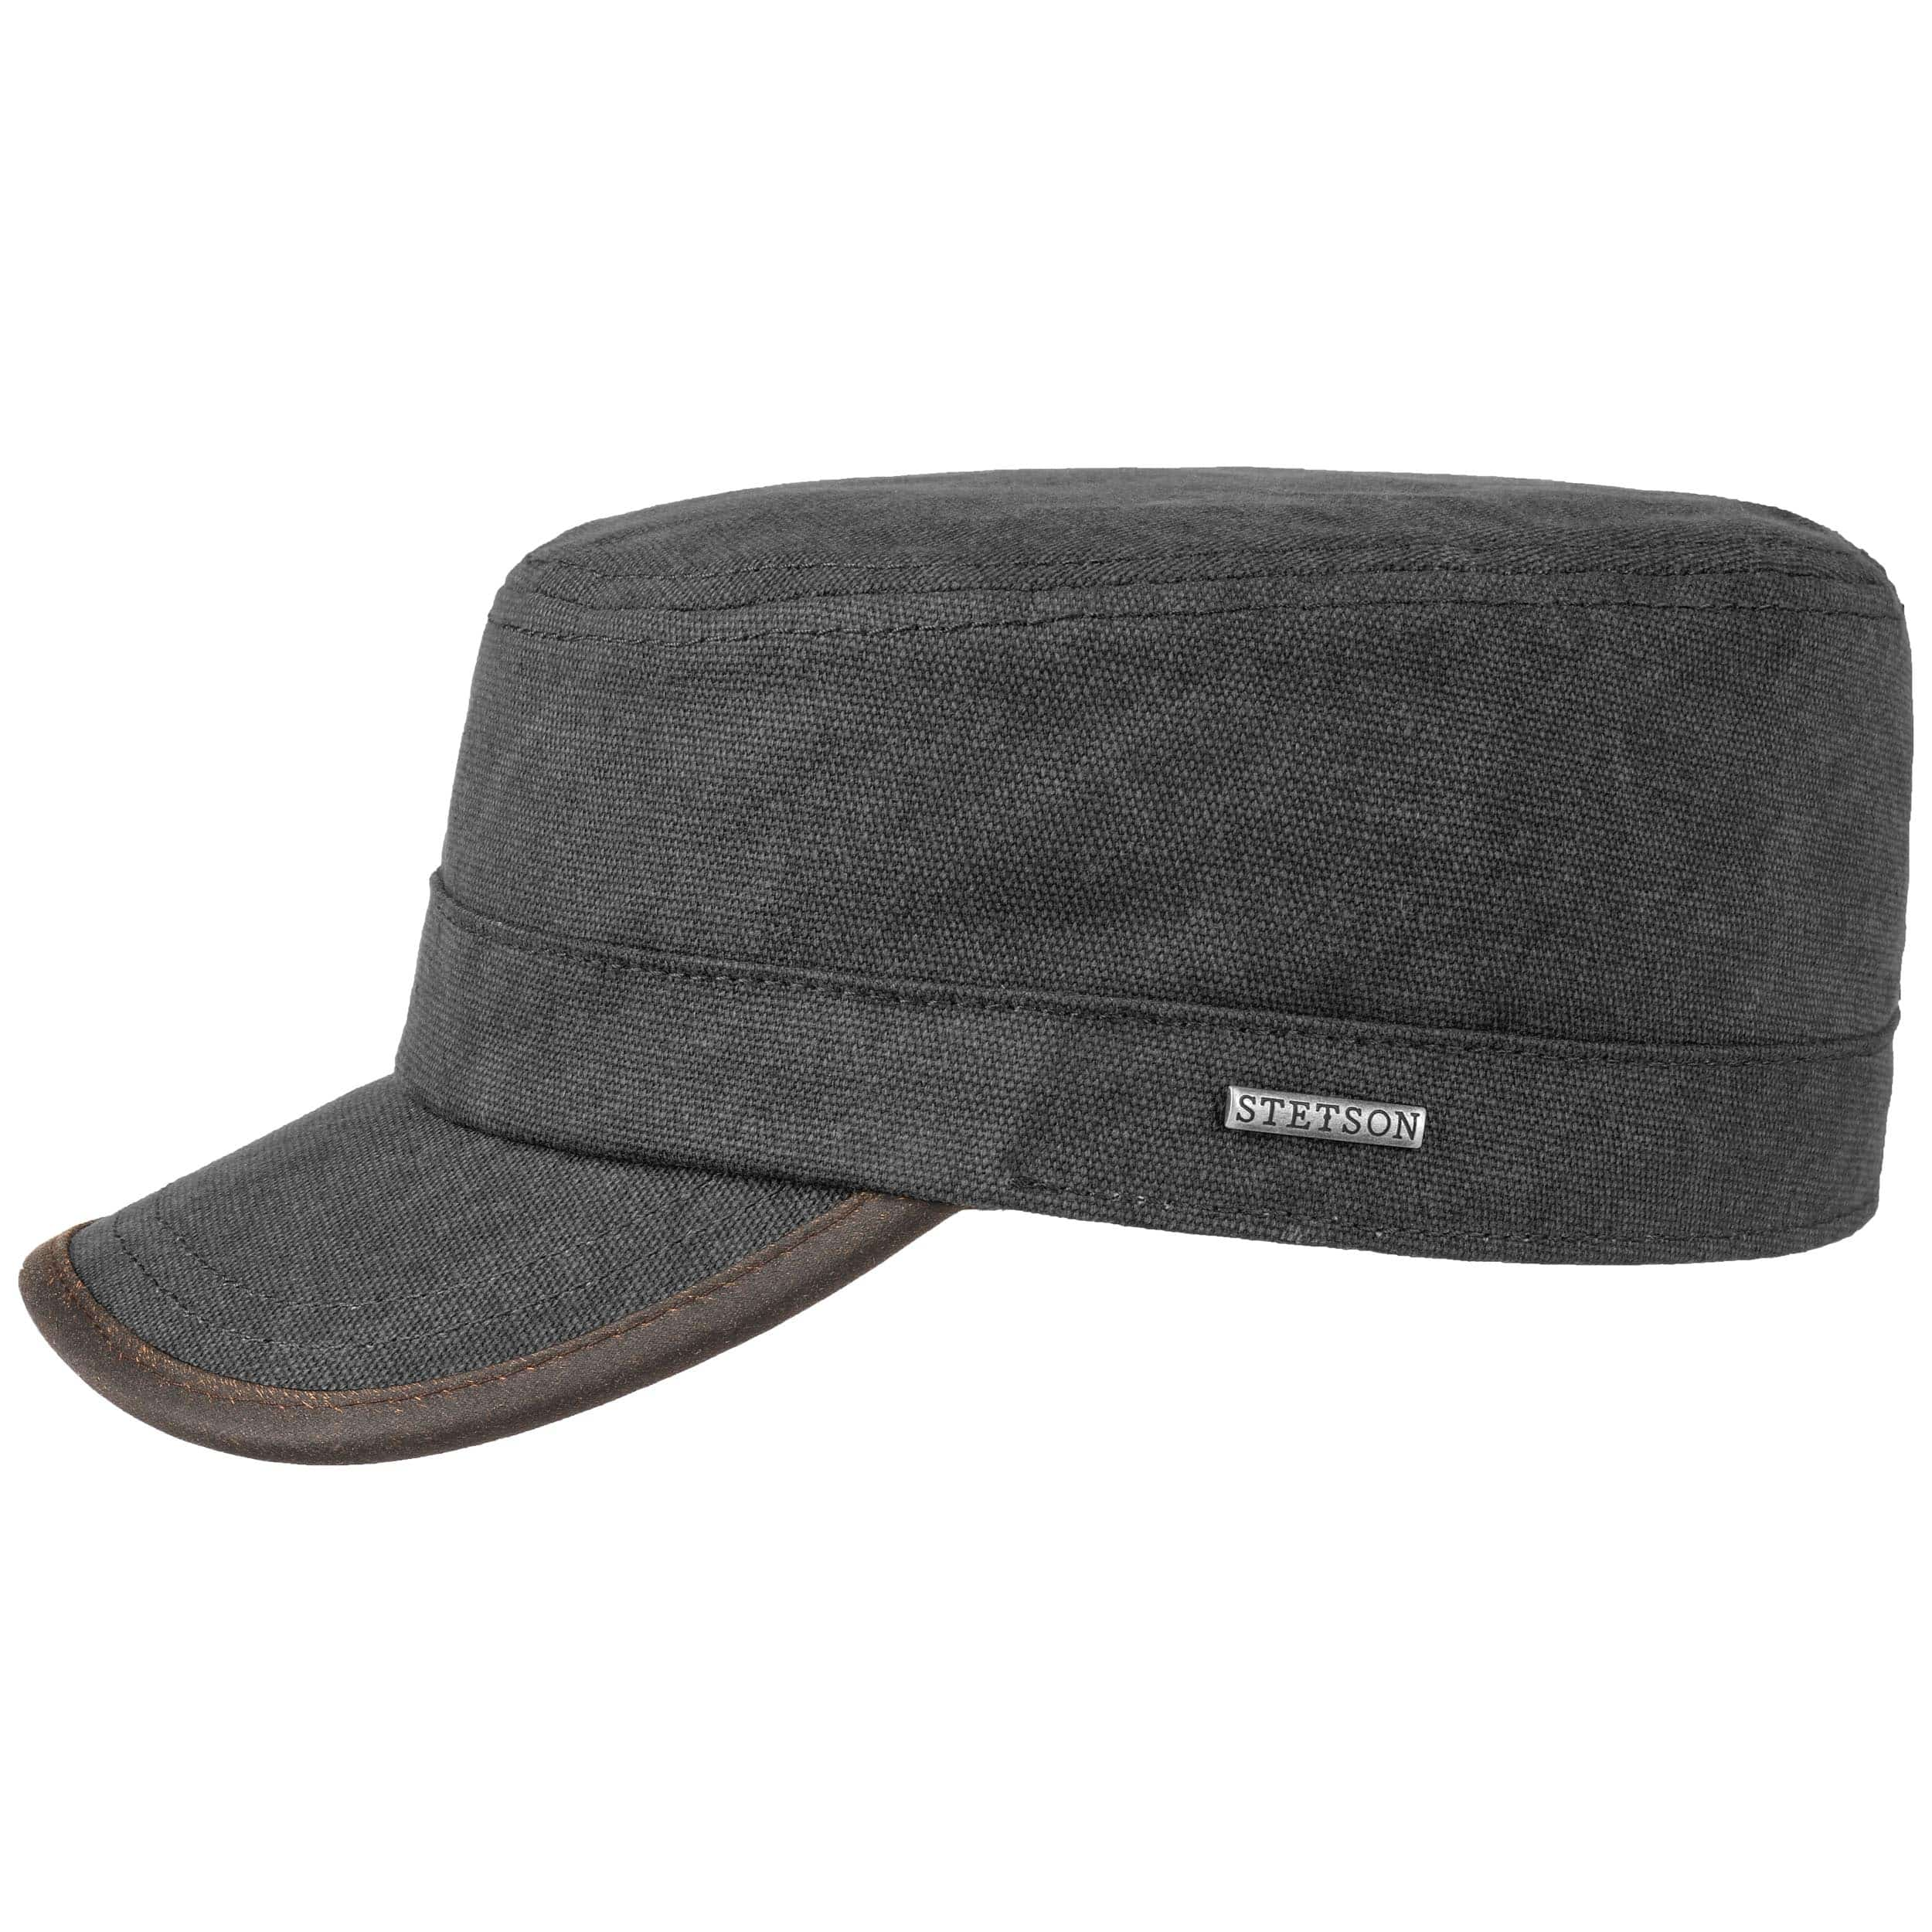 Cappellino Army Fodera in Pile by Stetson - antracite 1 ... ede15ef5c264